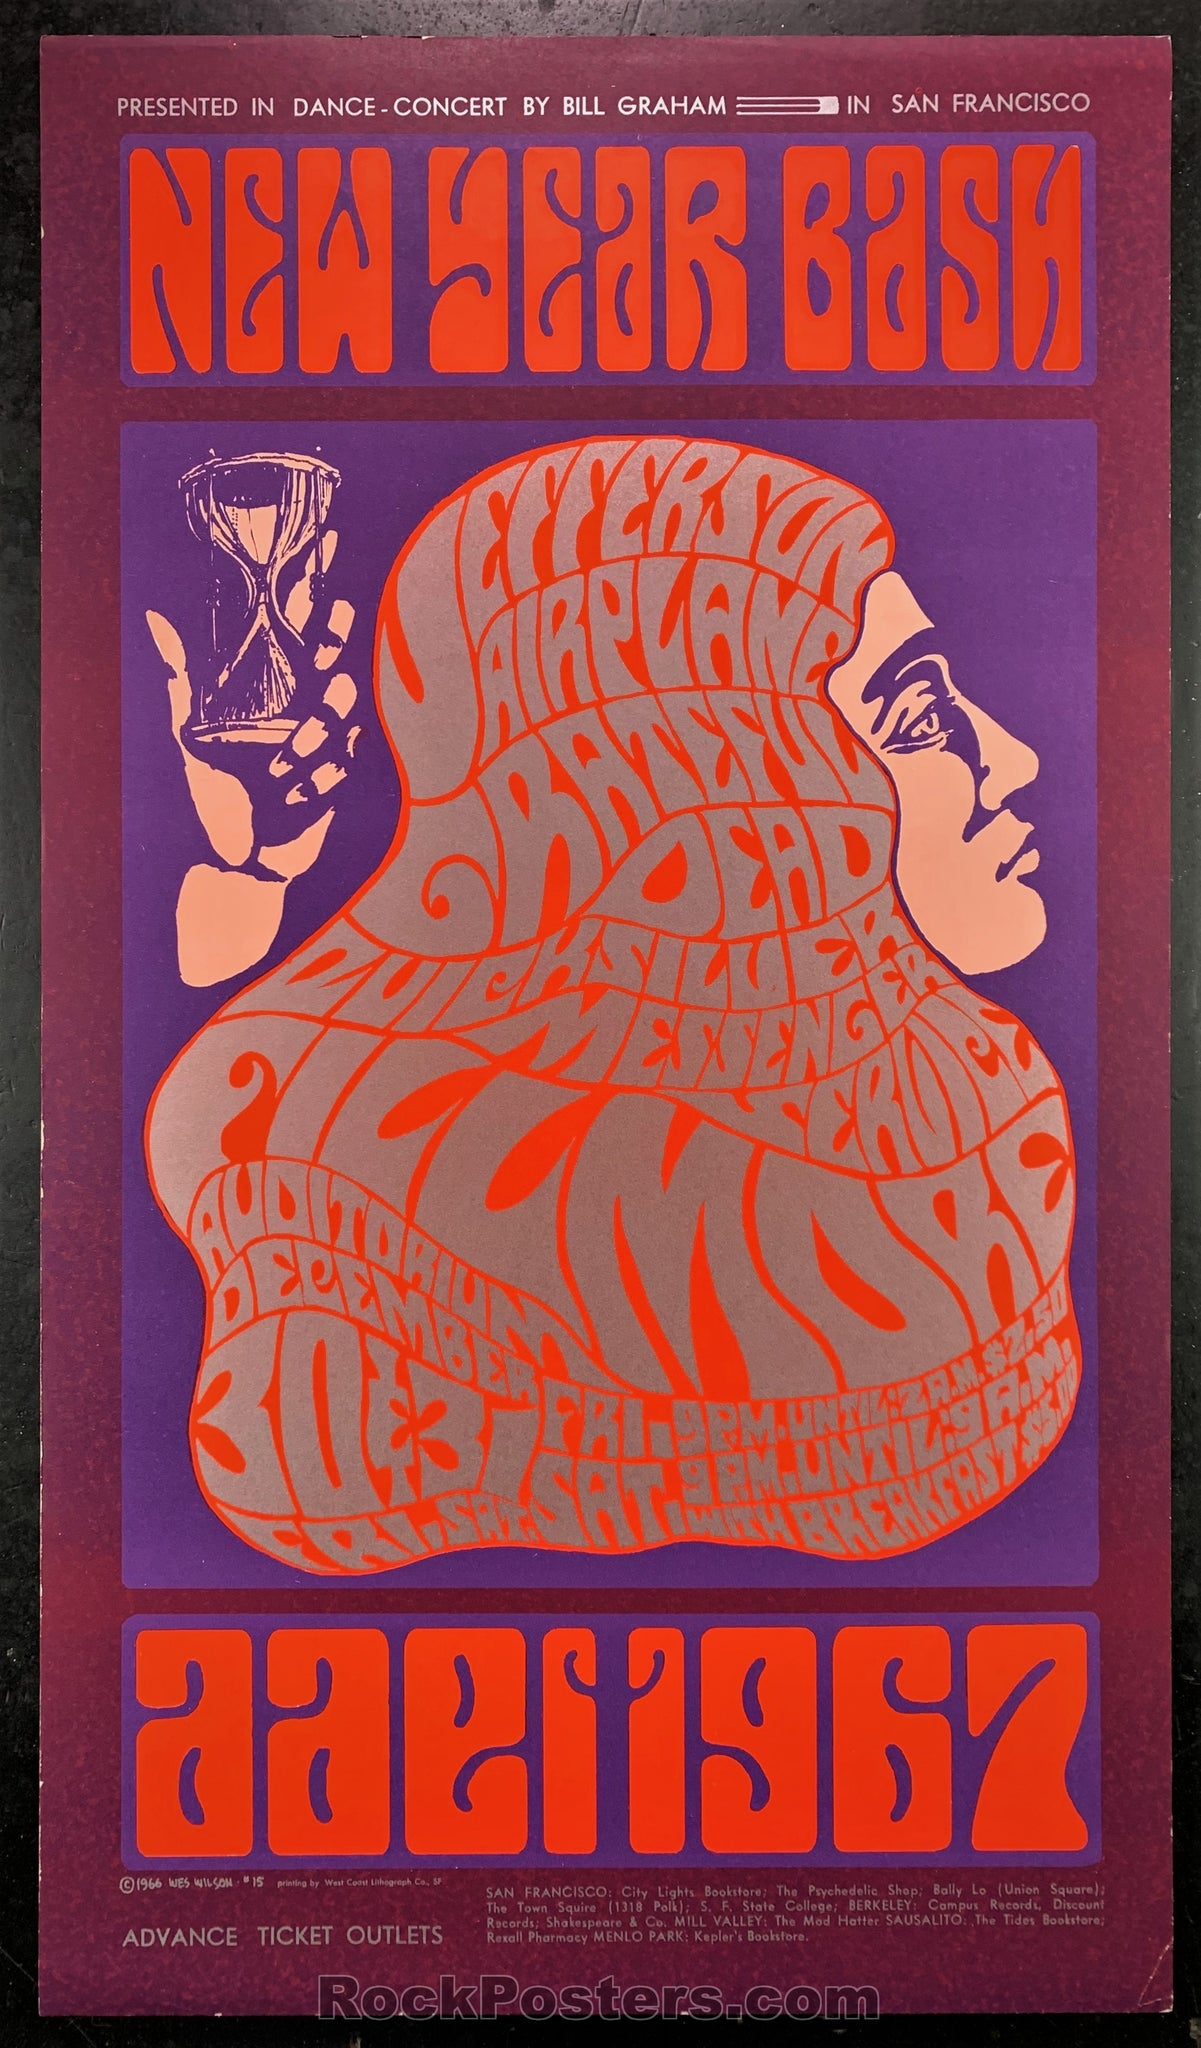 AUCTION - BG37 - Grateful Dead  New Years 66-67 Concert Poster - Fillmore  Auditorium - Condition - Excellent